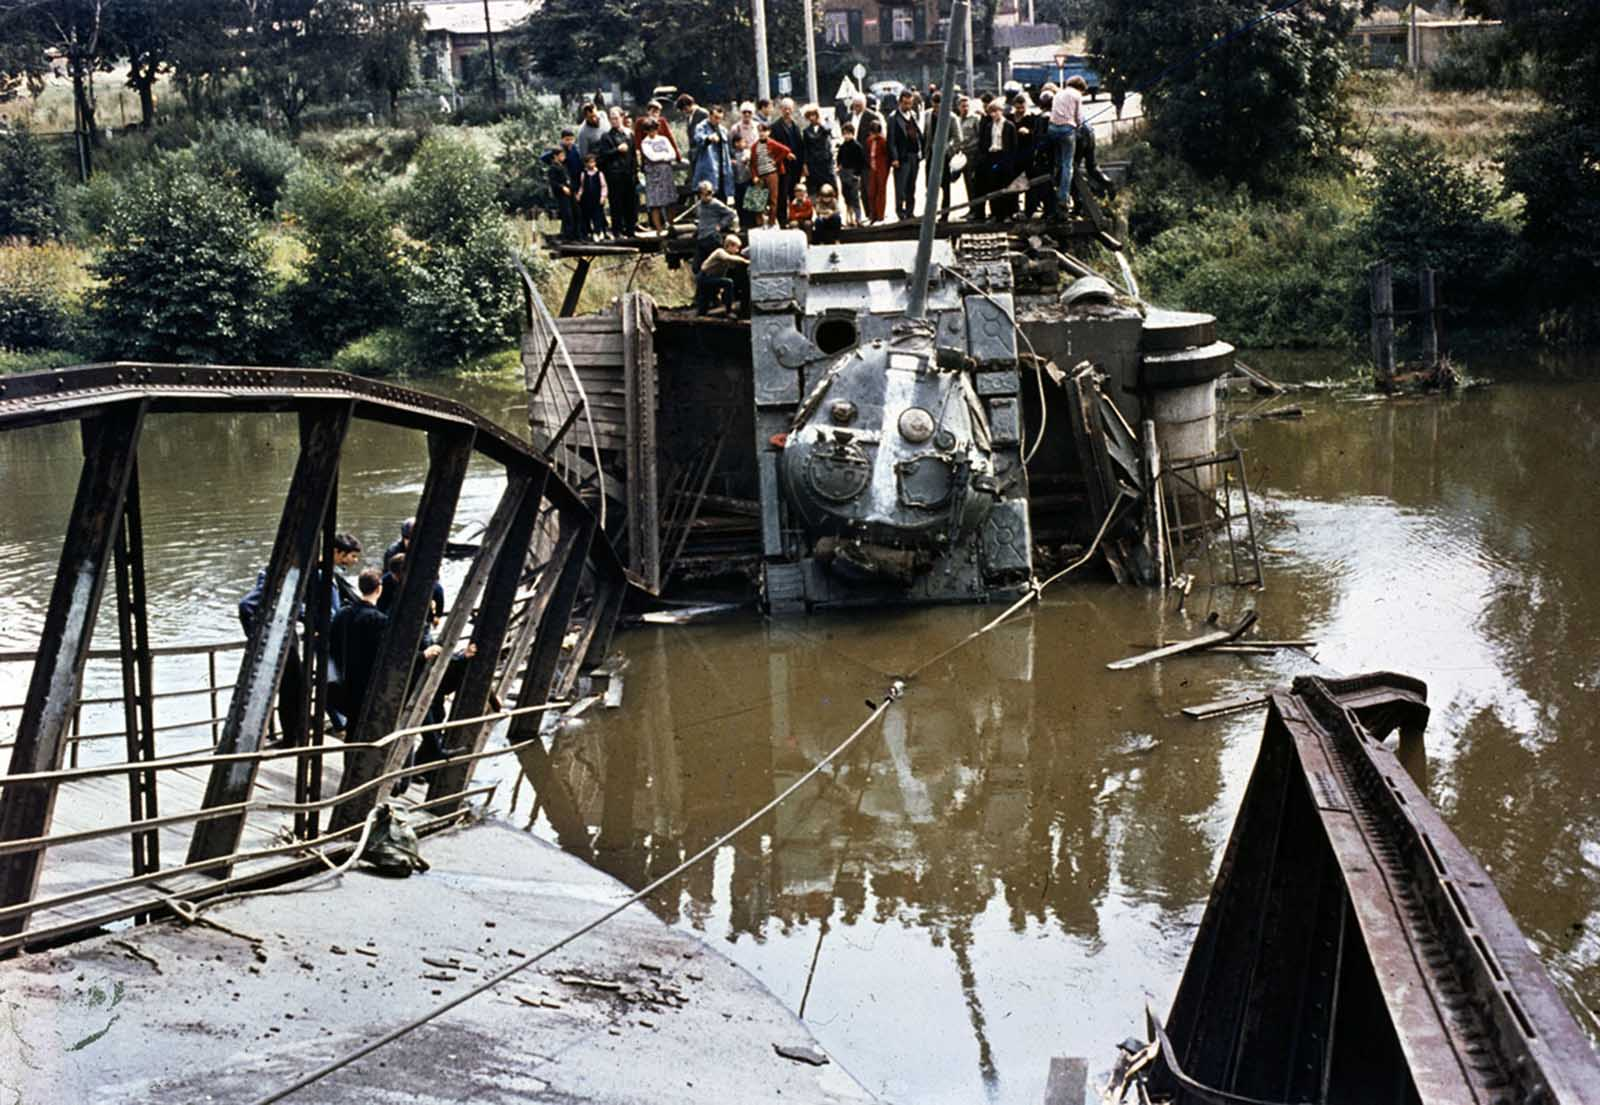 A Soviet tank is out of action after a bridge it was crossing gave way on August 21, 1968. One witness said the bridge had been dynamited, but the span may have collapsed due to the heavy weight of the tanks crossing it.